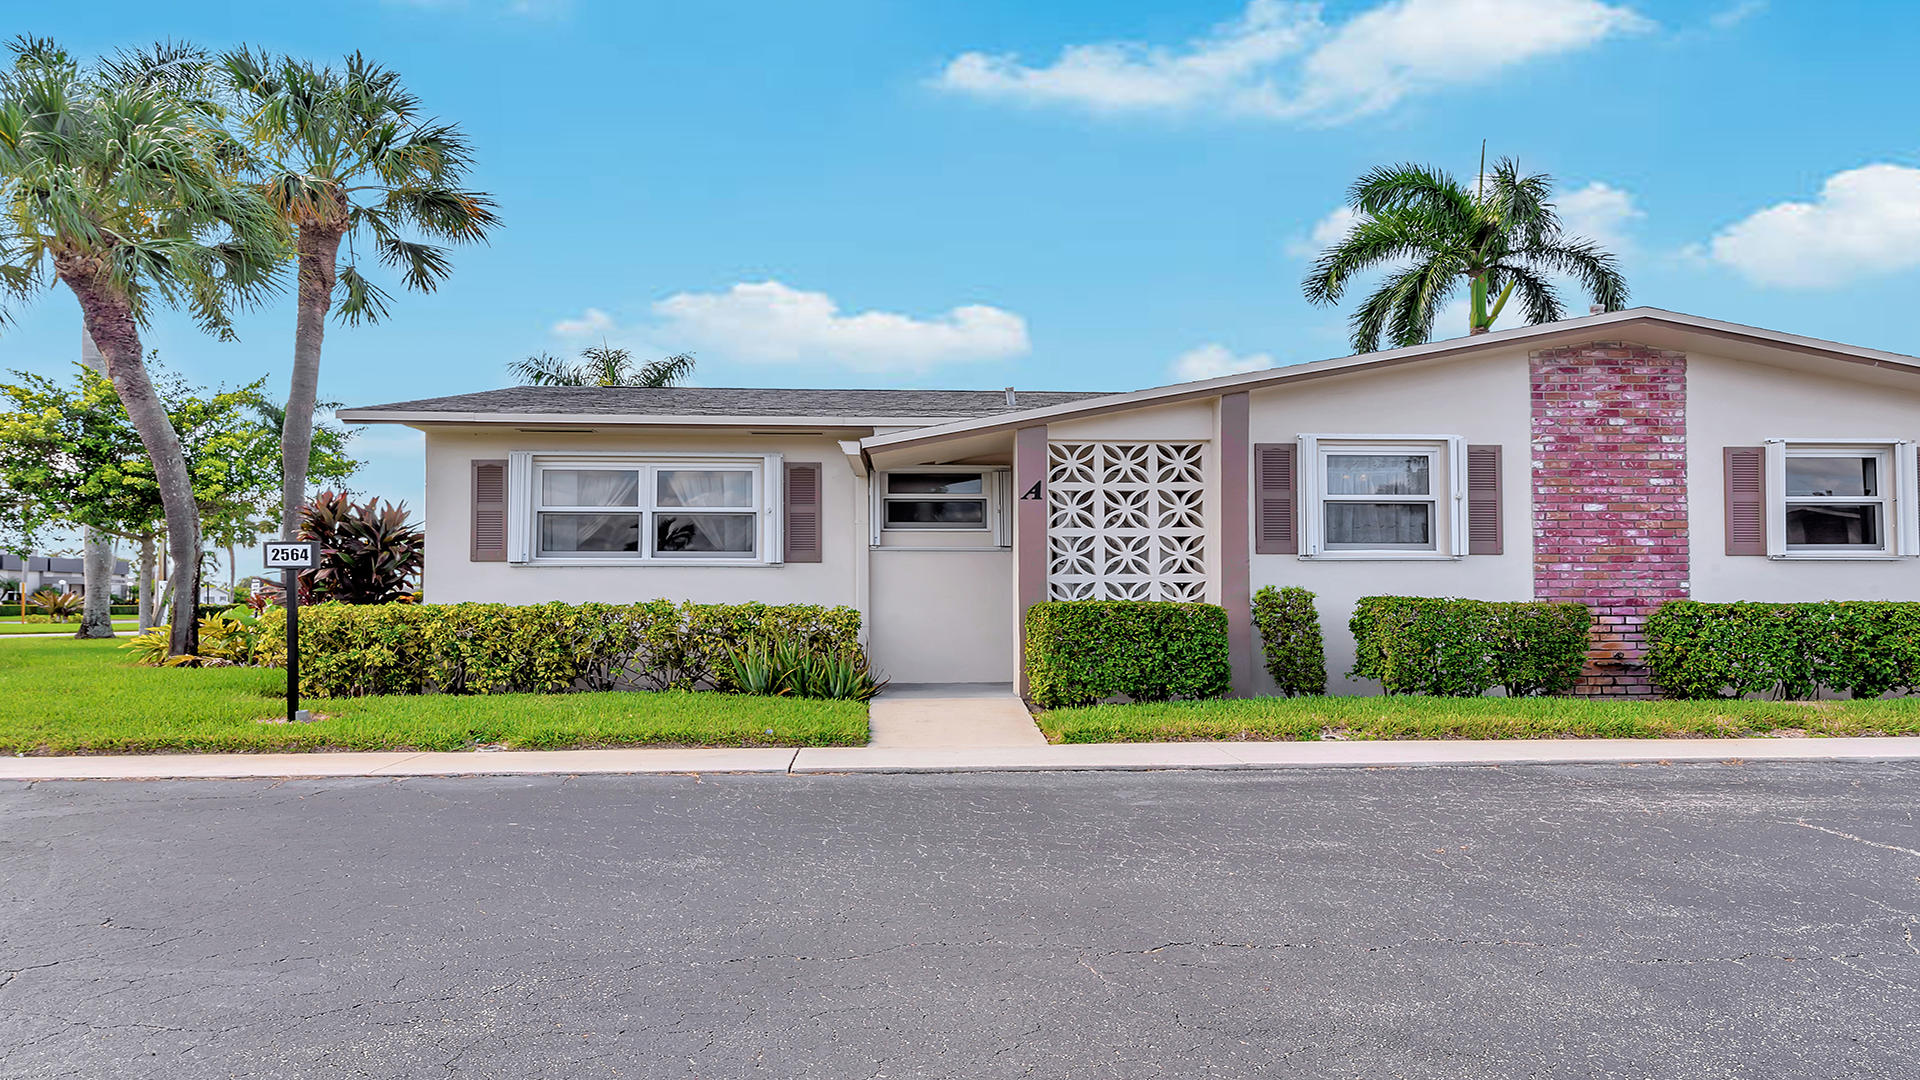 2564 Emory Drive A West Palm Beach, FL 33415 small photo 1